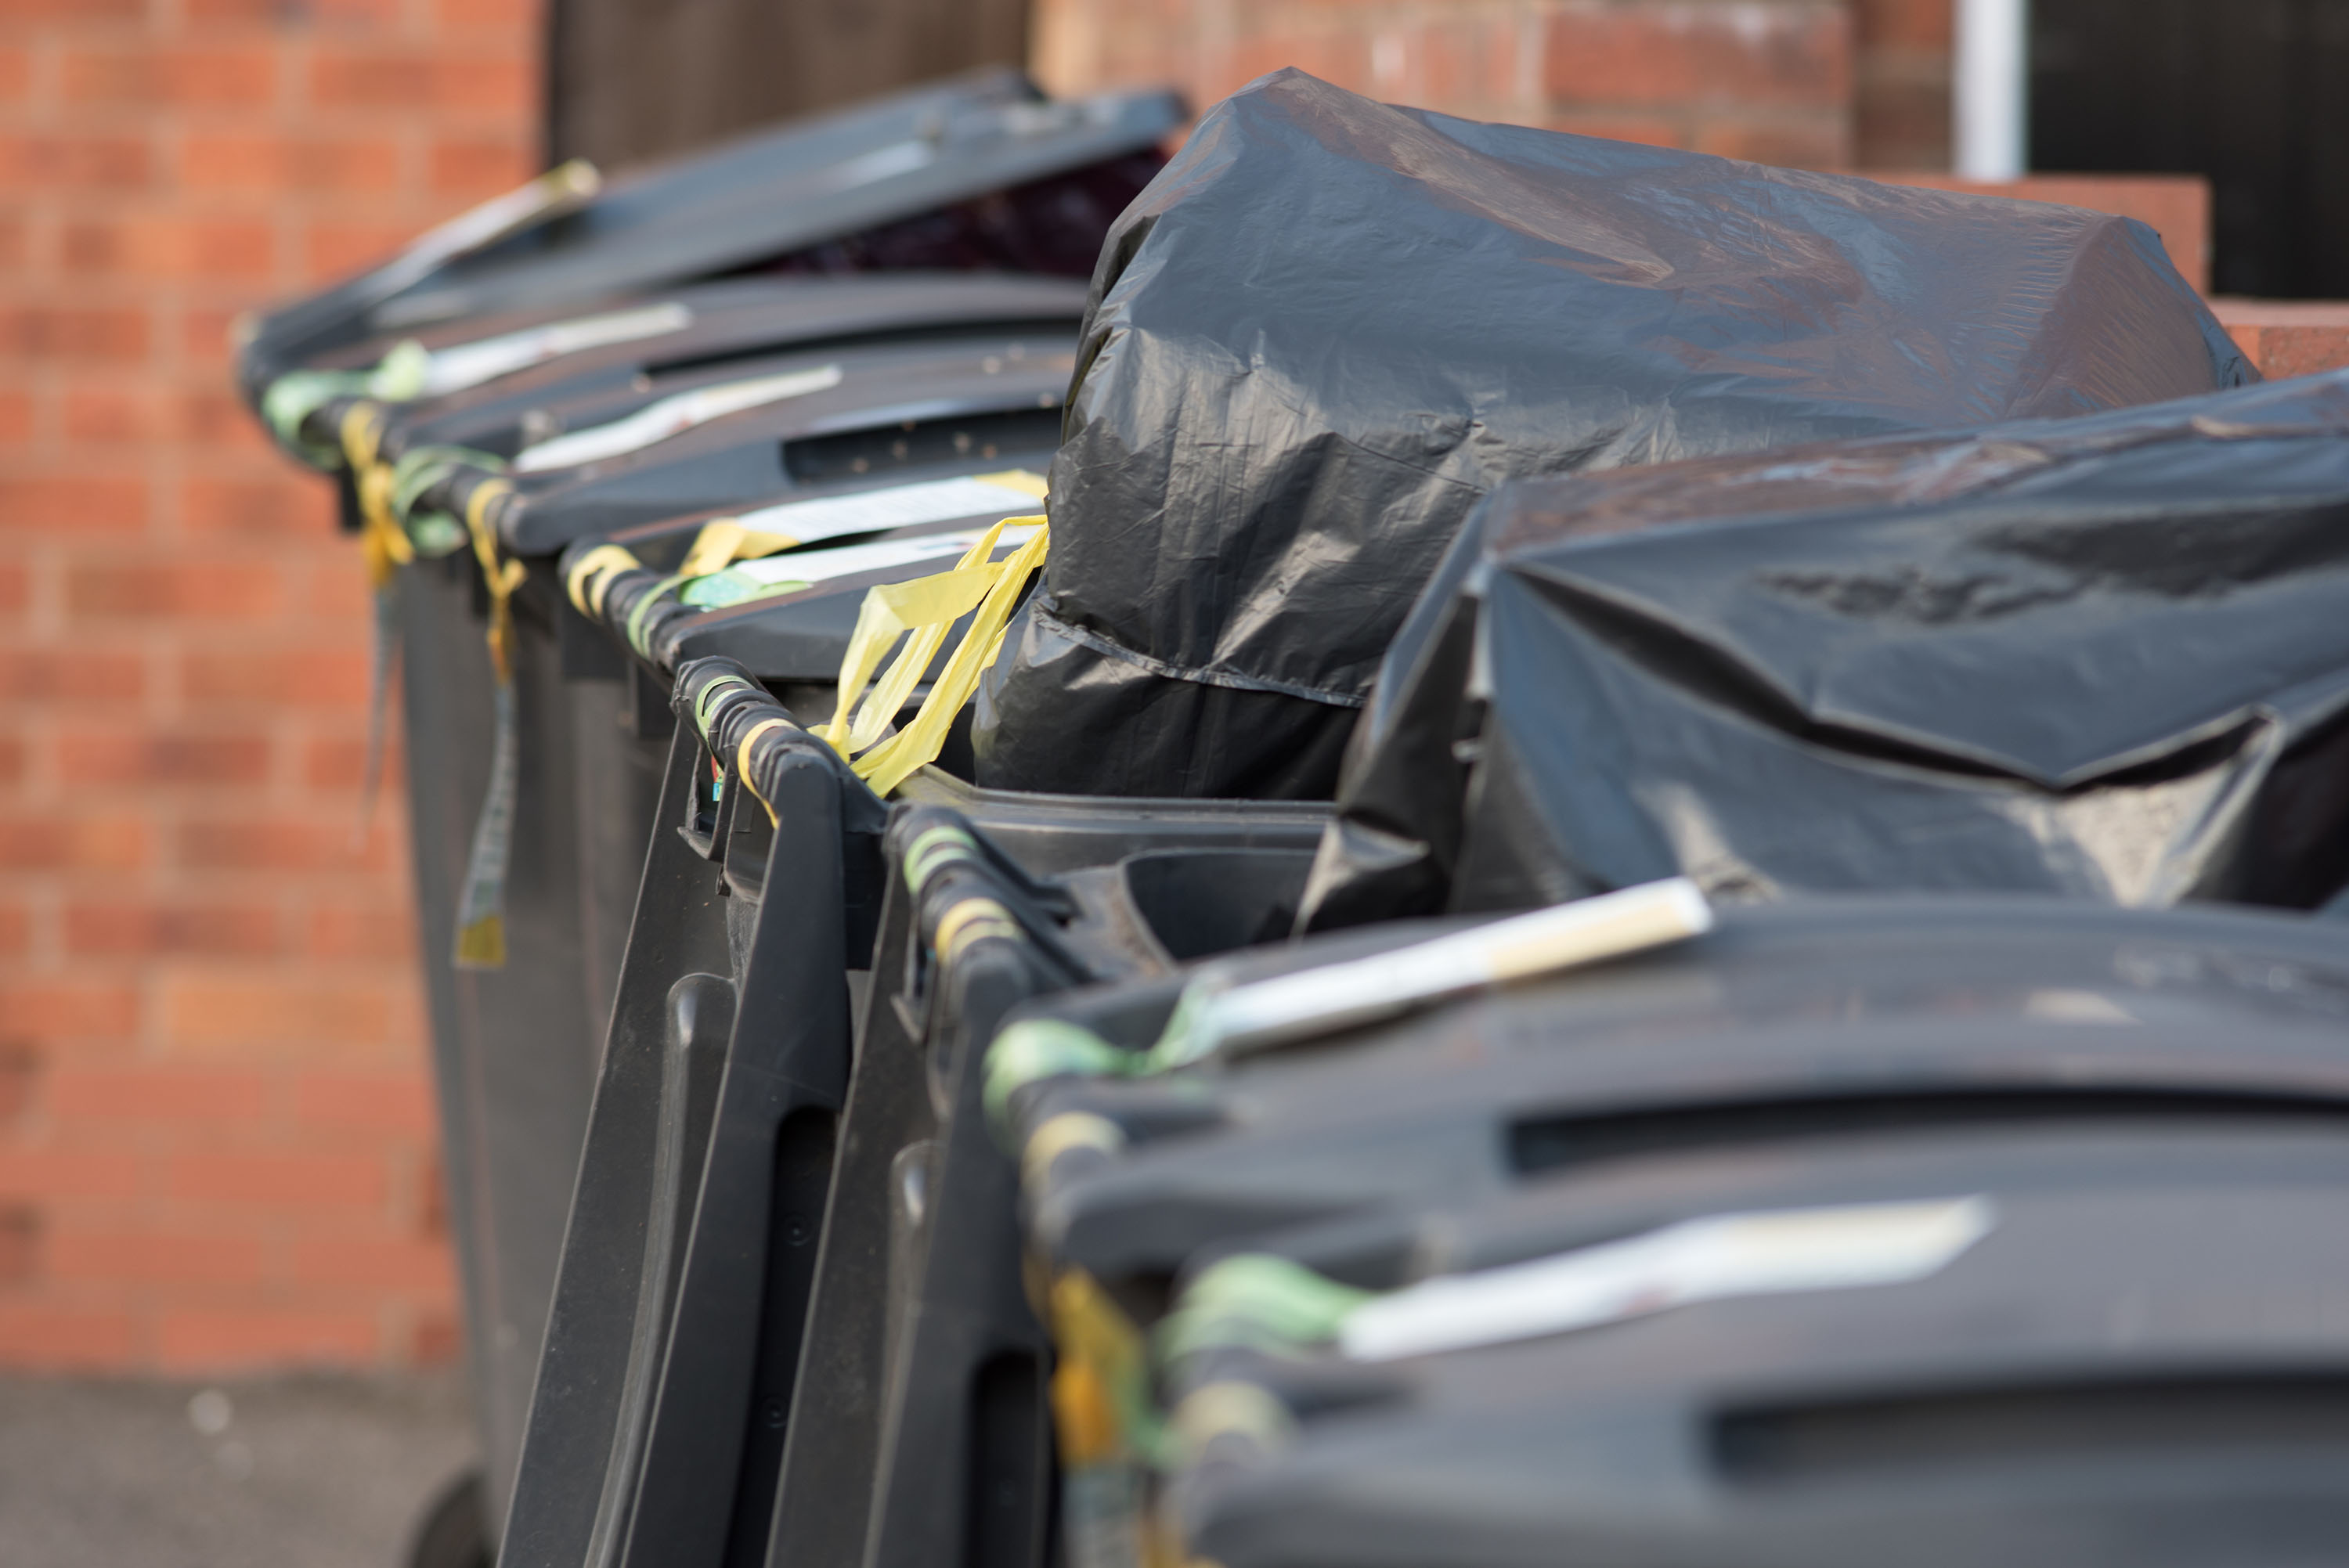 Waste collection is a prominent service delivered by local authorities